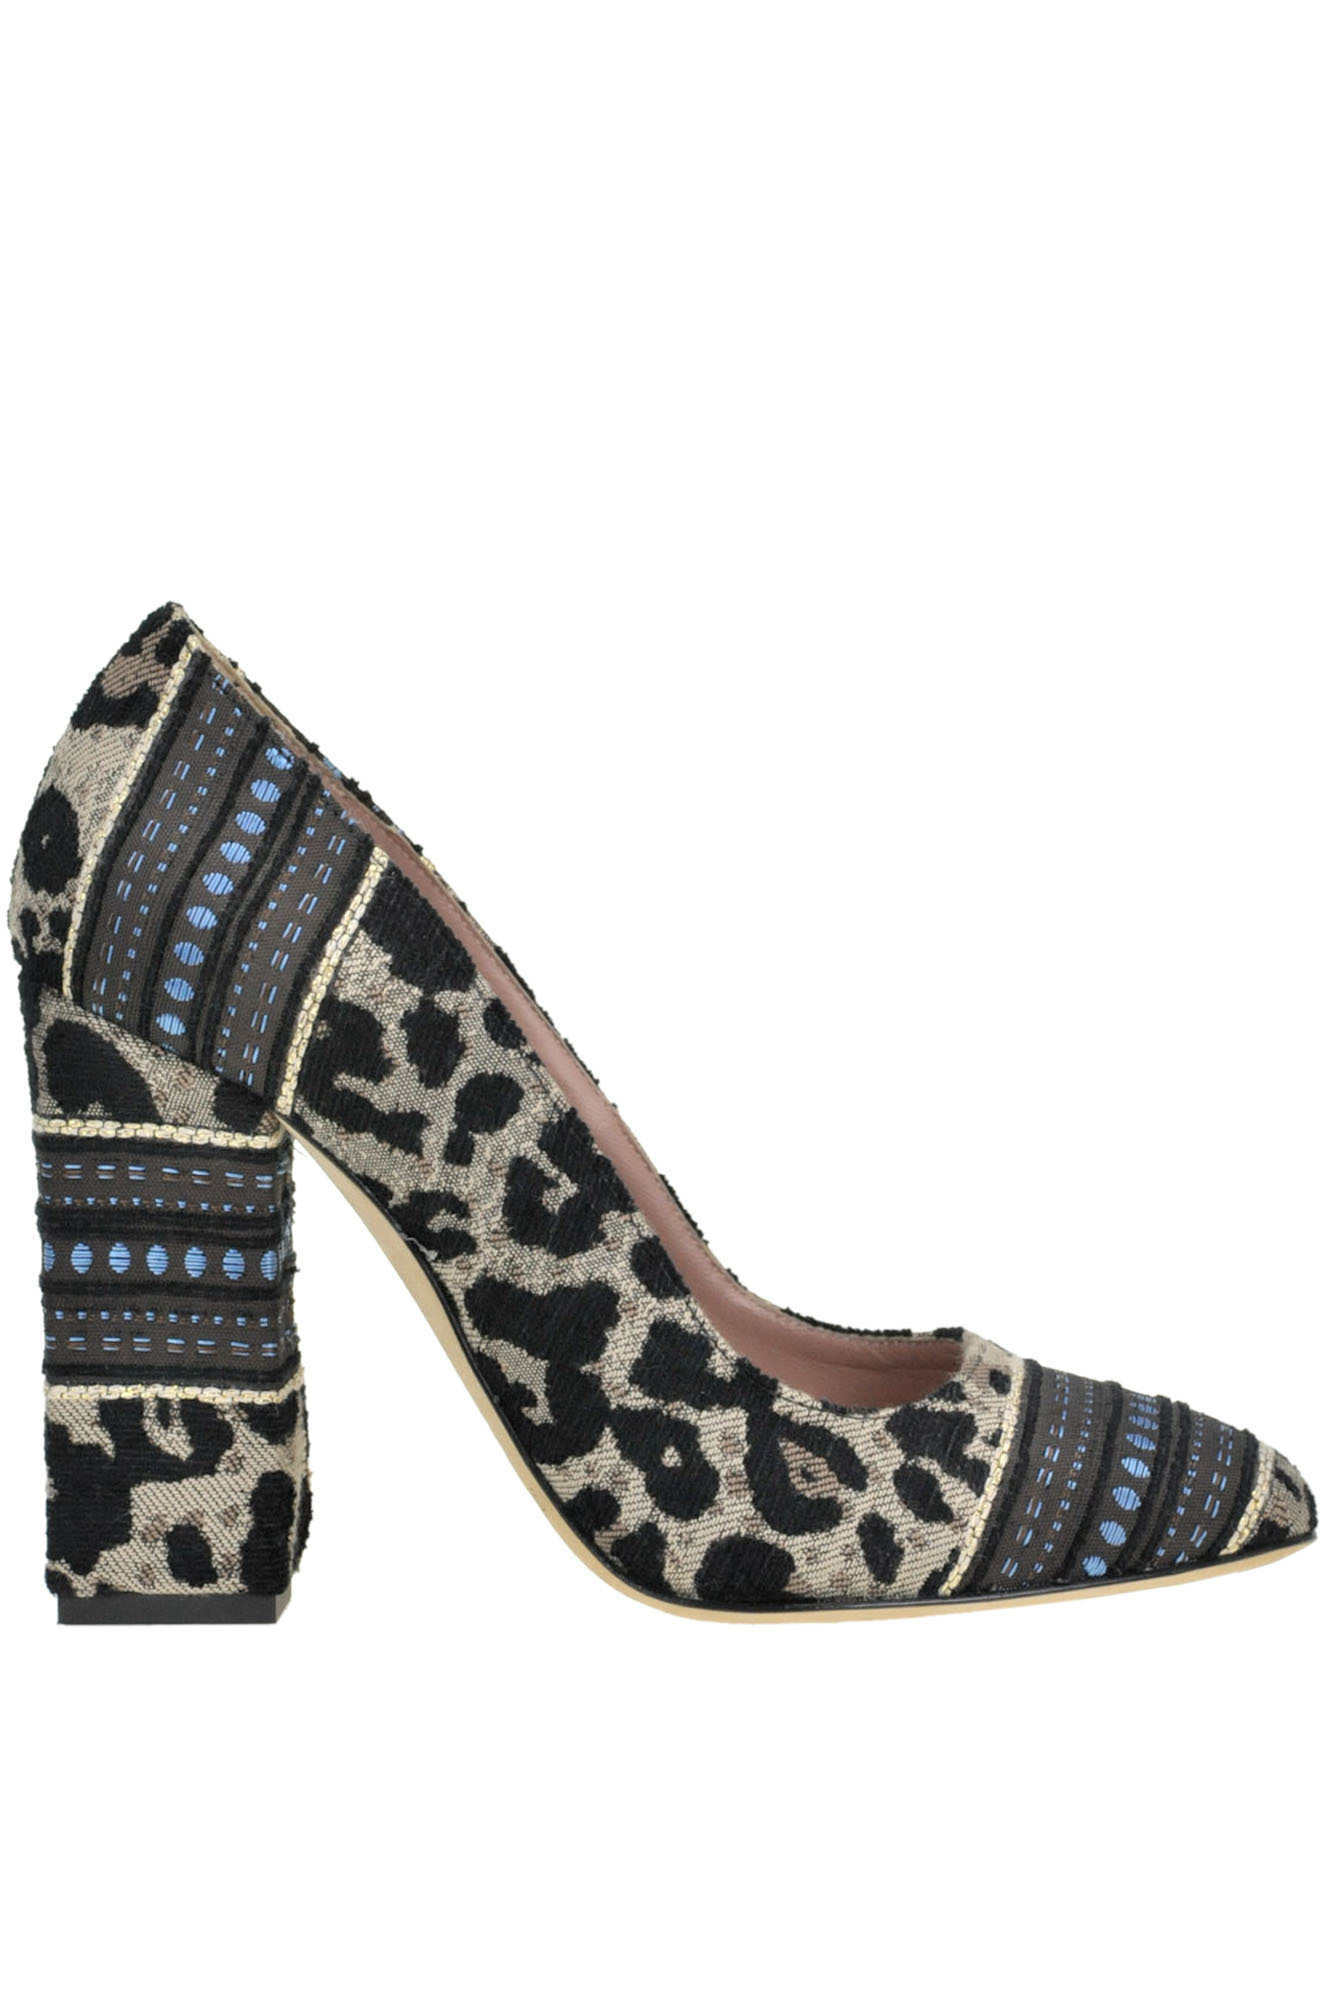 GIANNA MELIANI Lucy Pumps in Multicoloured